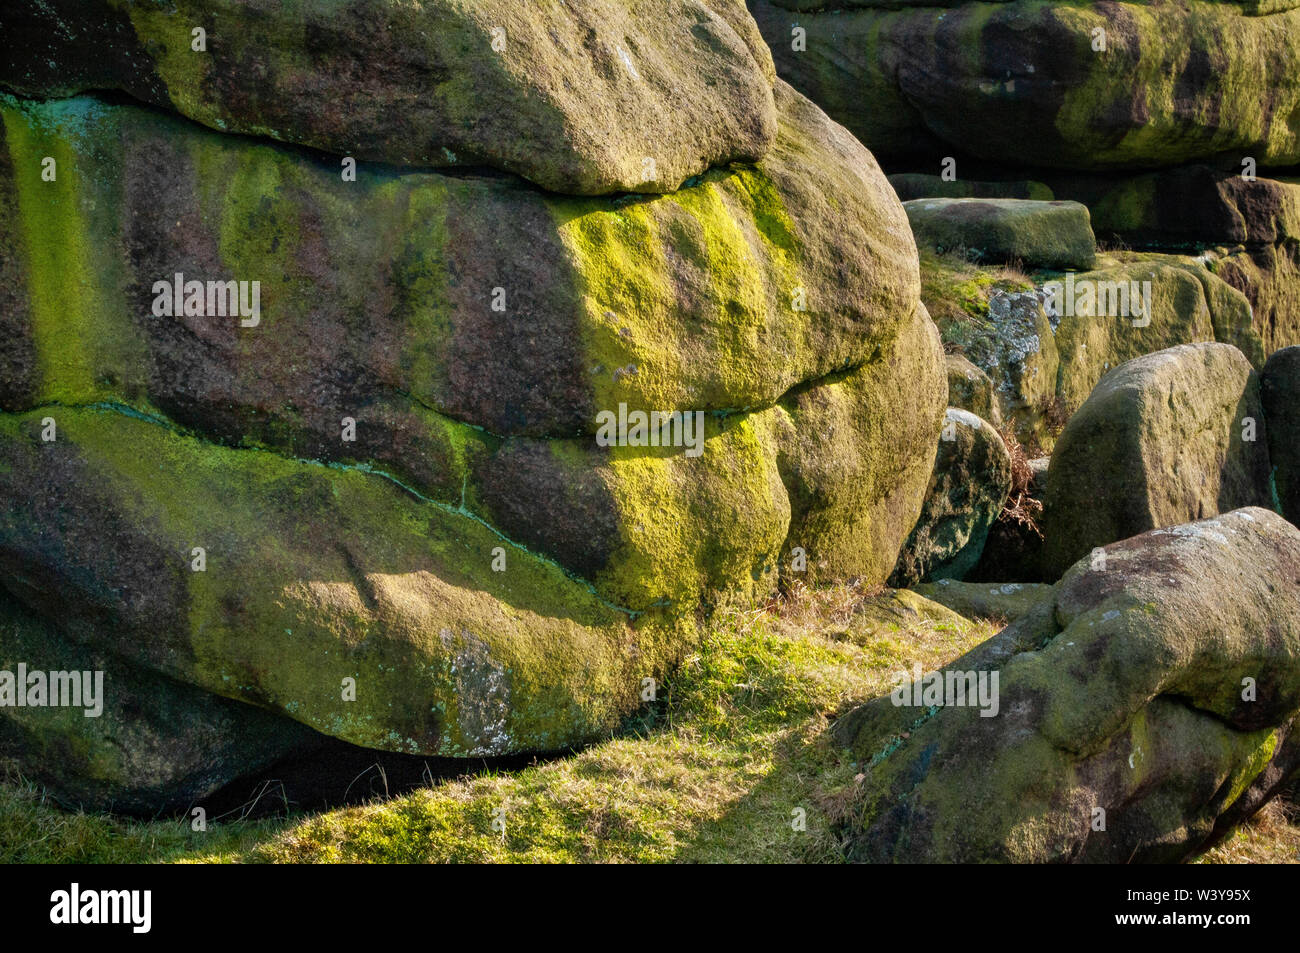 Close-up of a gritstone boulder with horizontal bedding at Gardom's Edge, near Baslow, Derbyshire Stock Photo